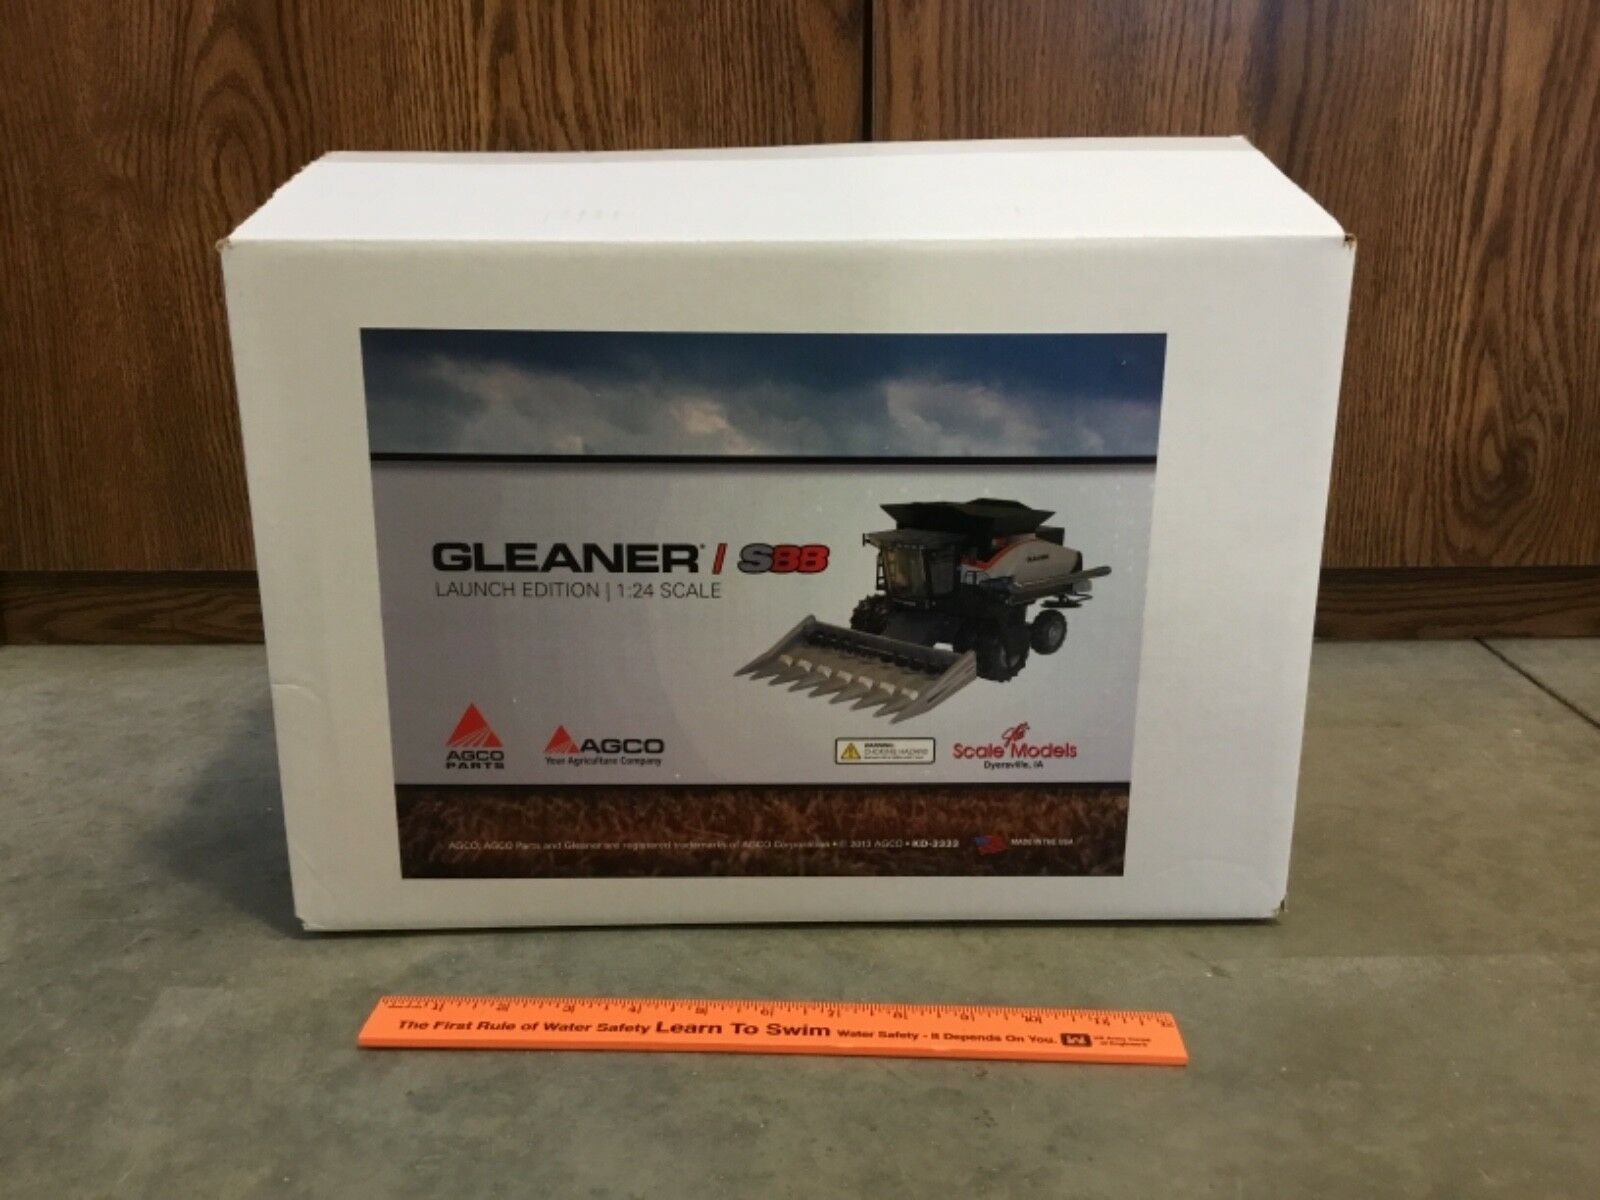 RARE 1 24 Agco Gleaner S88 Official Launch Edition combine  NIB, FREE shipping